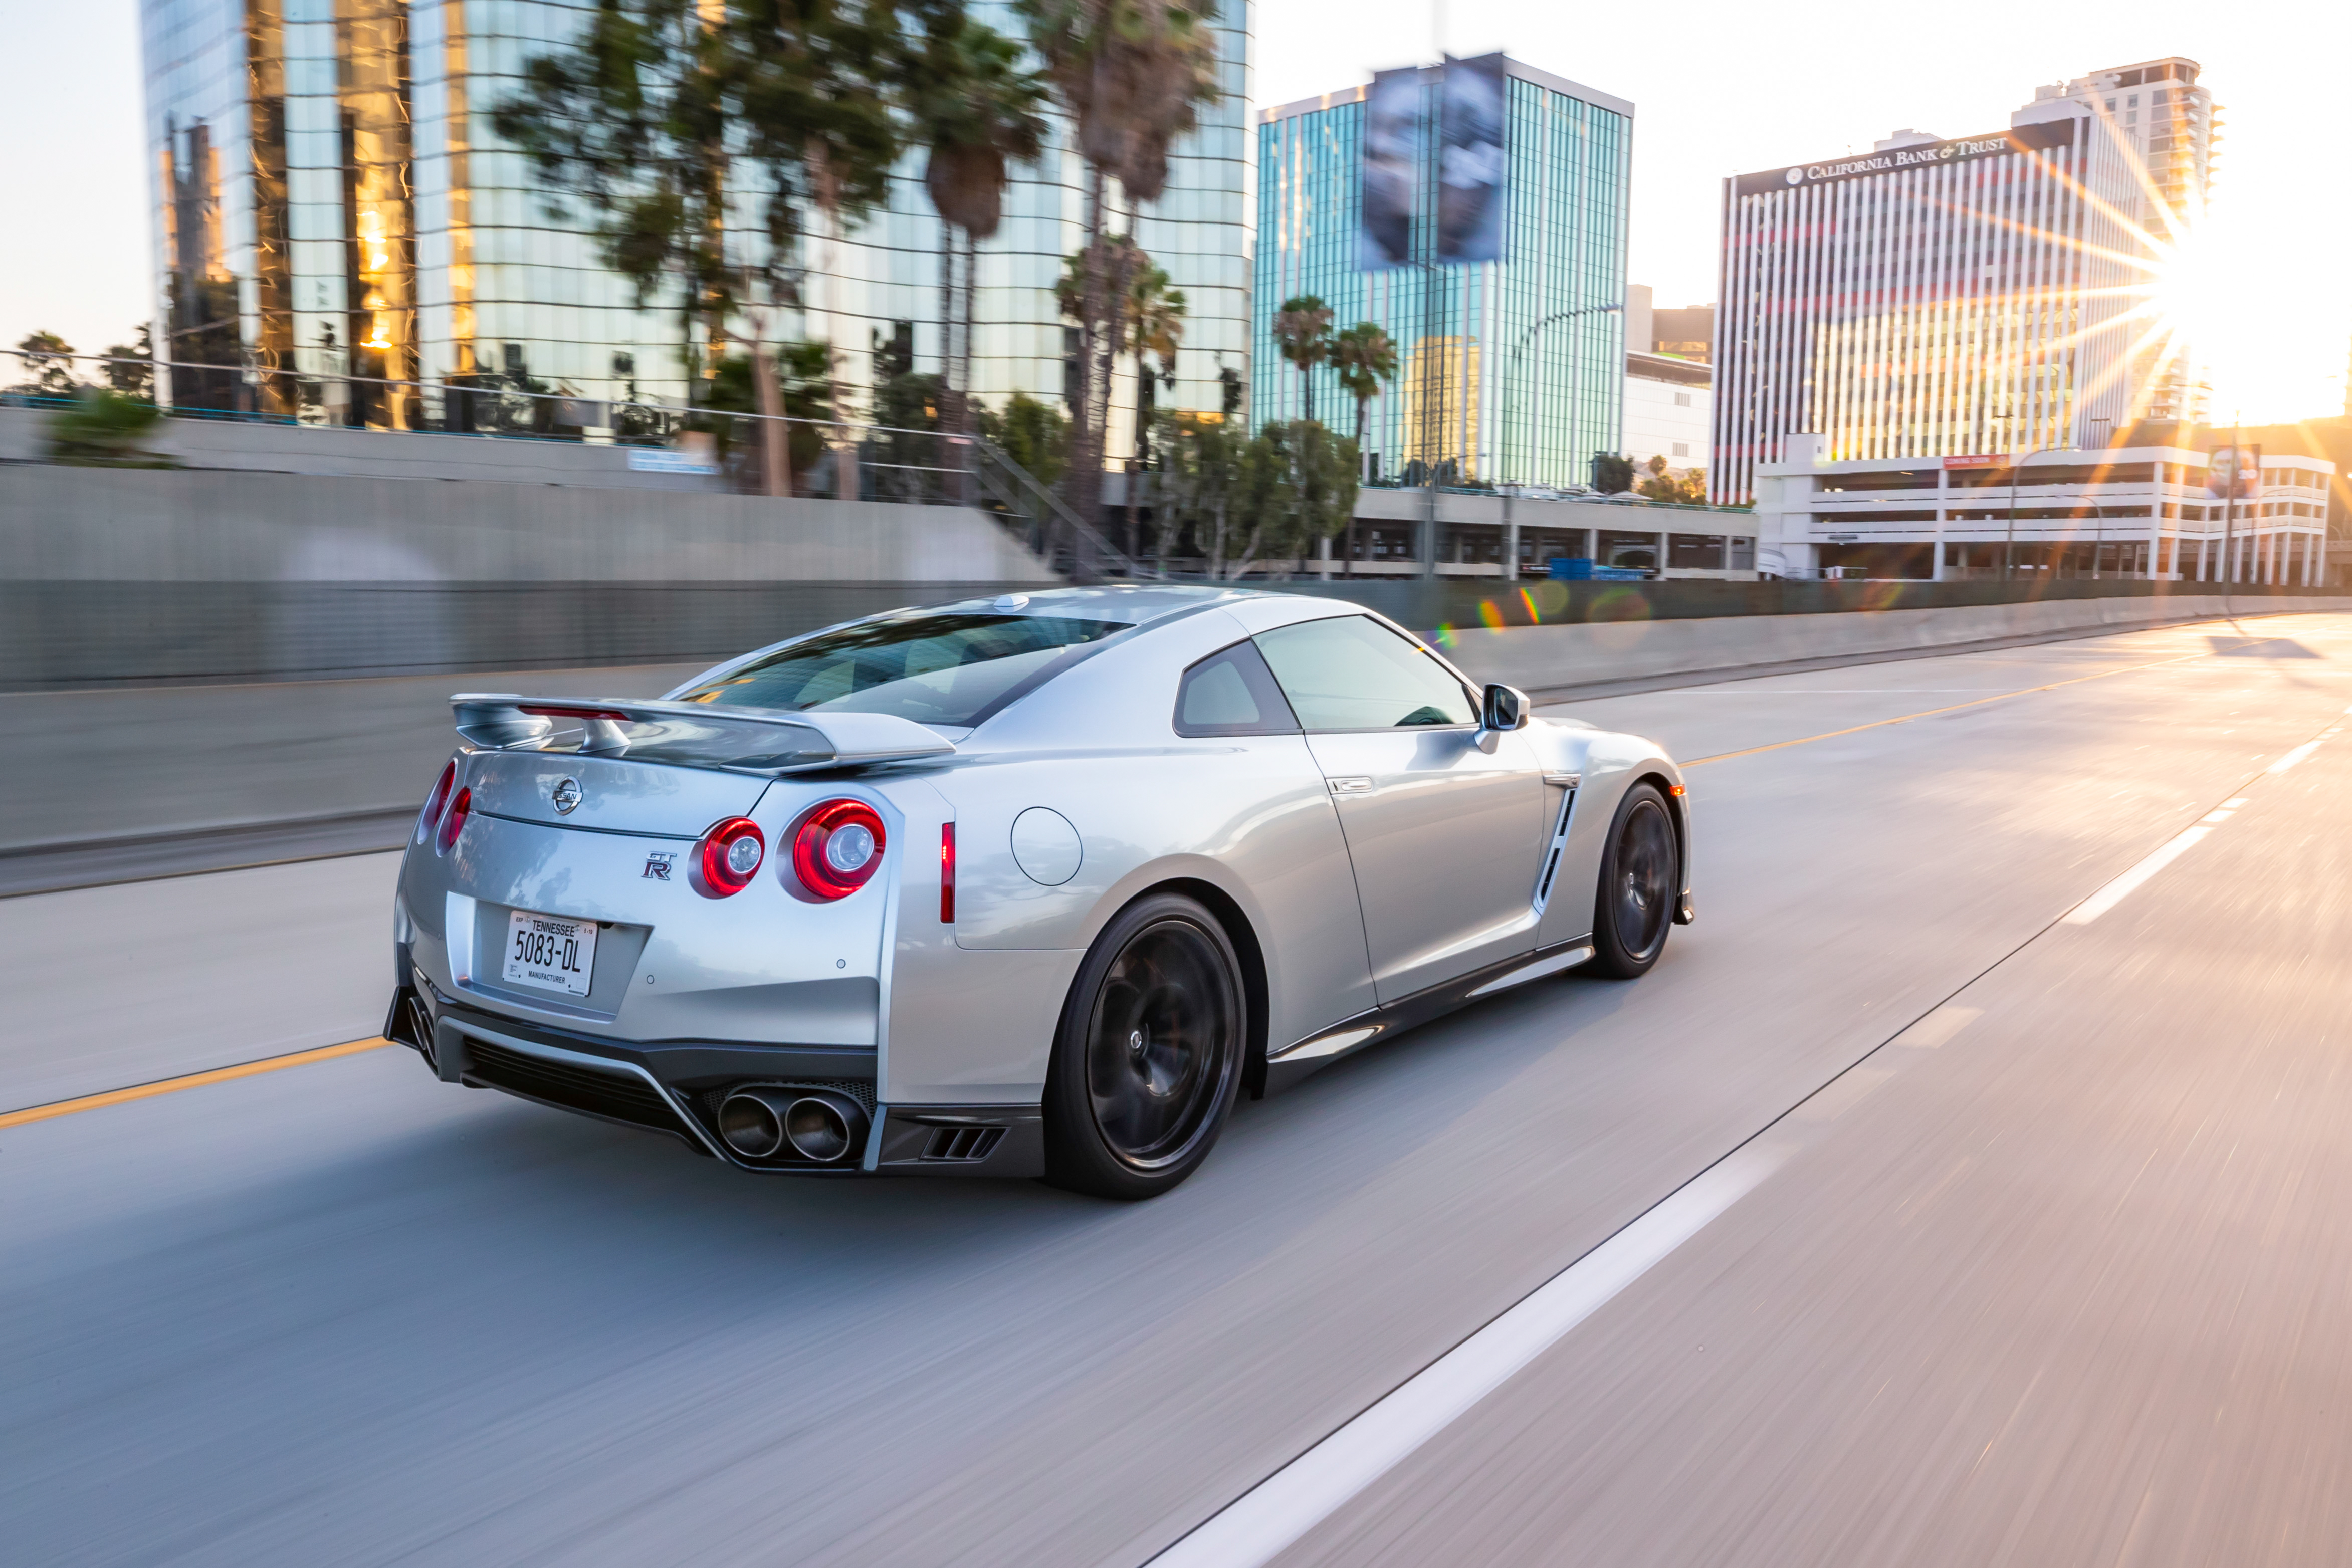 5 Of The Best Sports Cars That Can Be Driven Daily